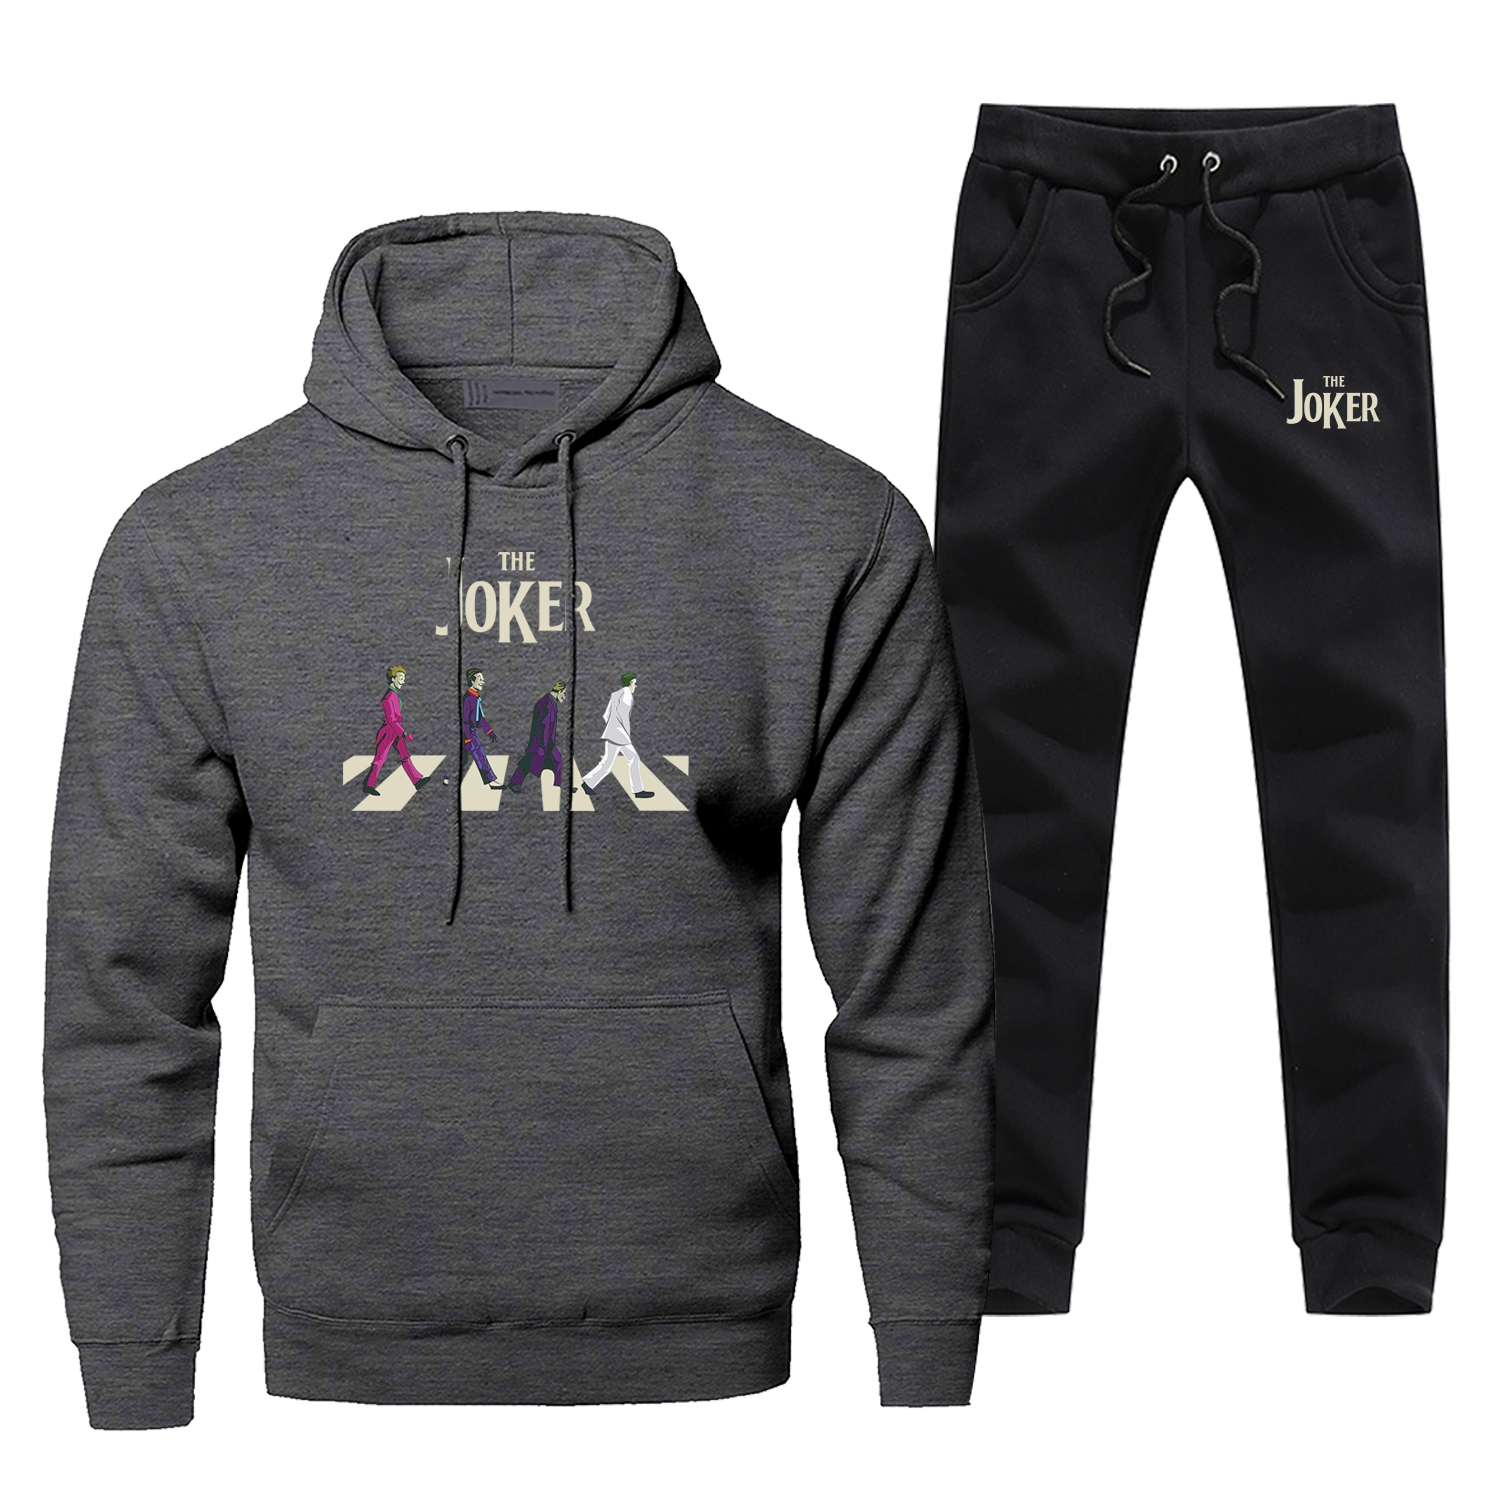 Mens Hoodies Jokers Sets Two Piece Pant Hoodie Badman Joker Sweatshirt Sweatpants Streetwear Sportswear Fun Cartoon Sweatshirts